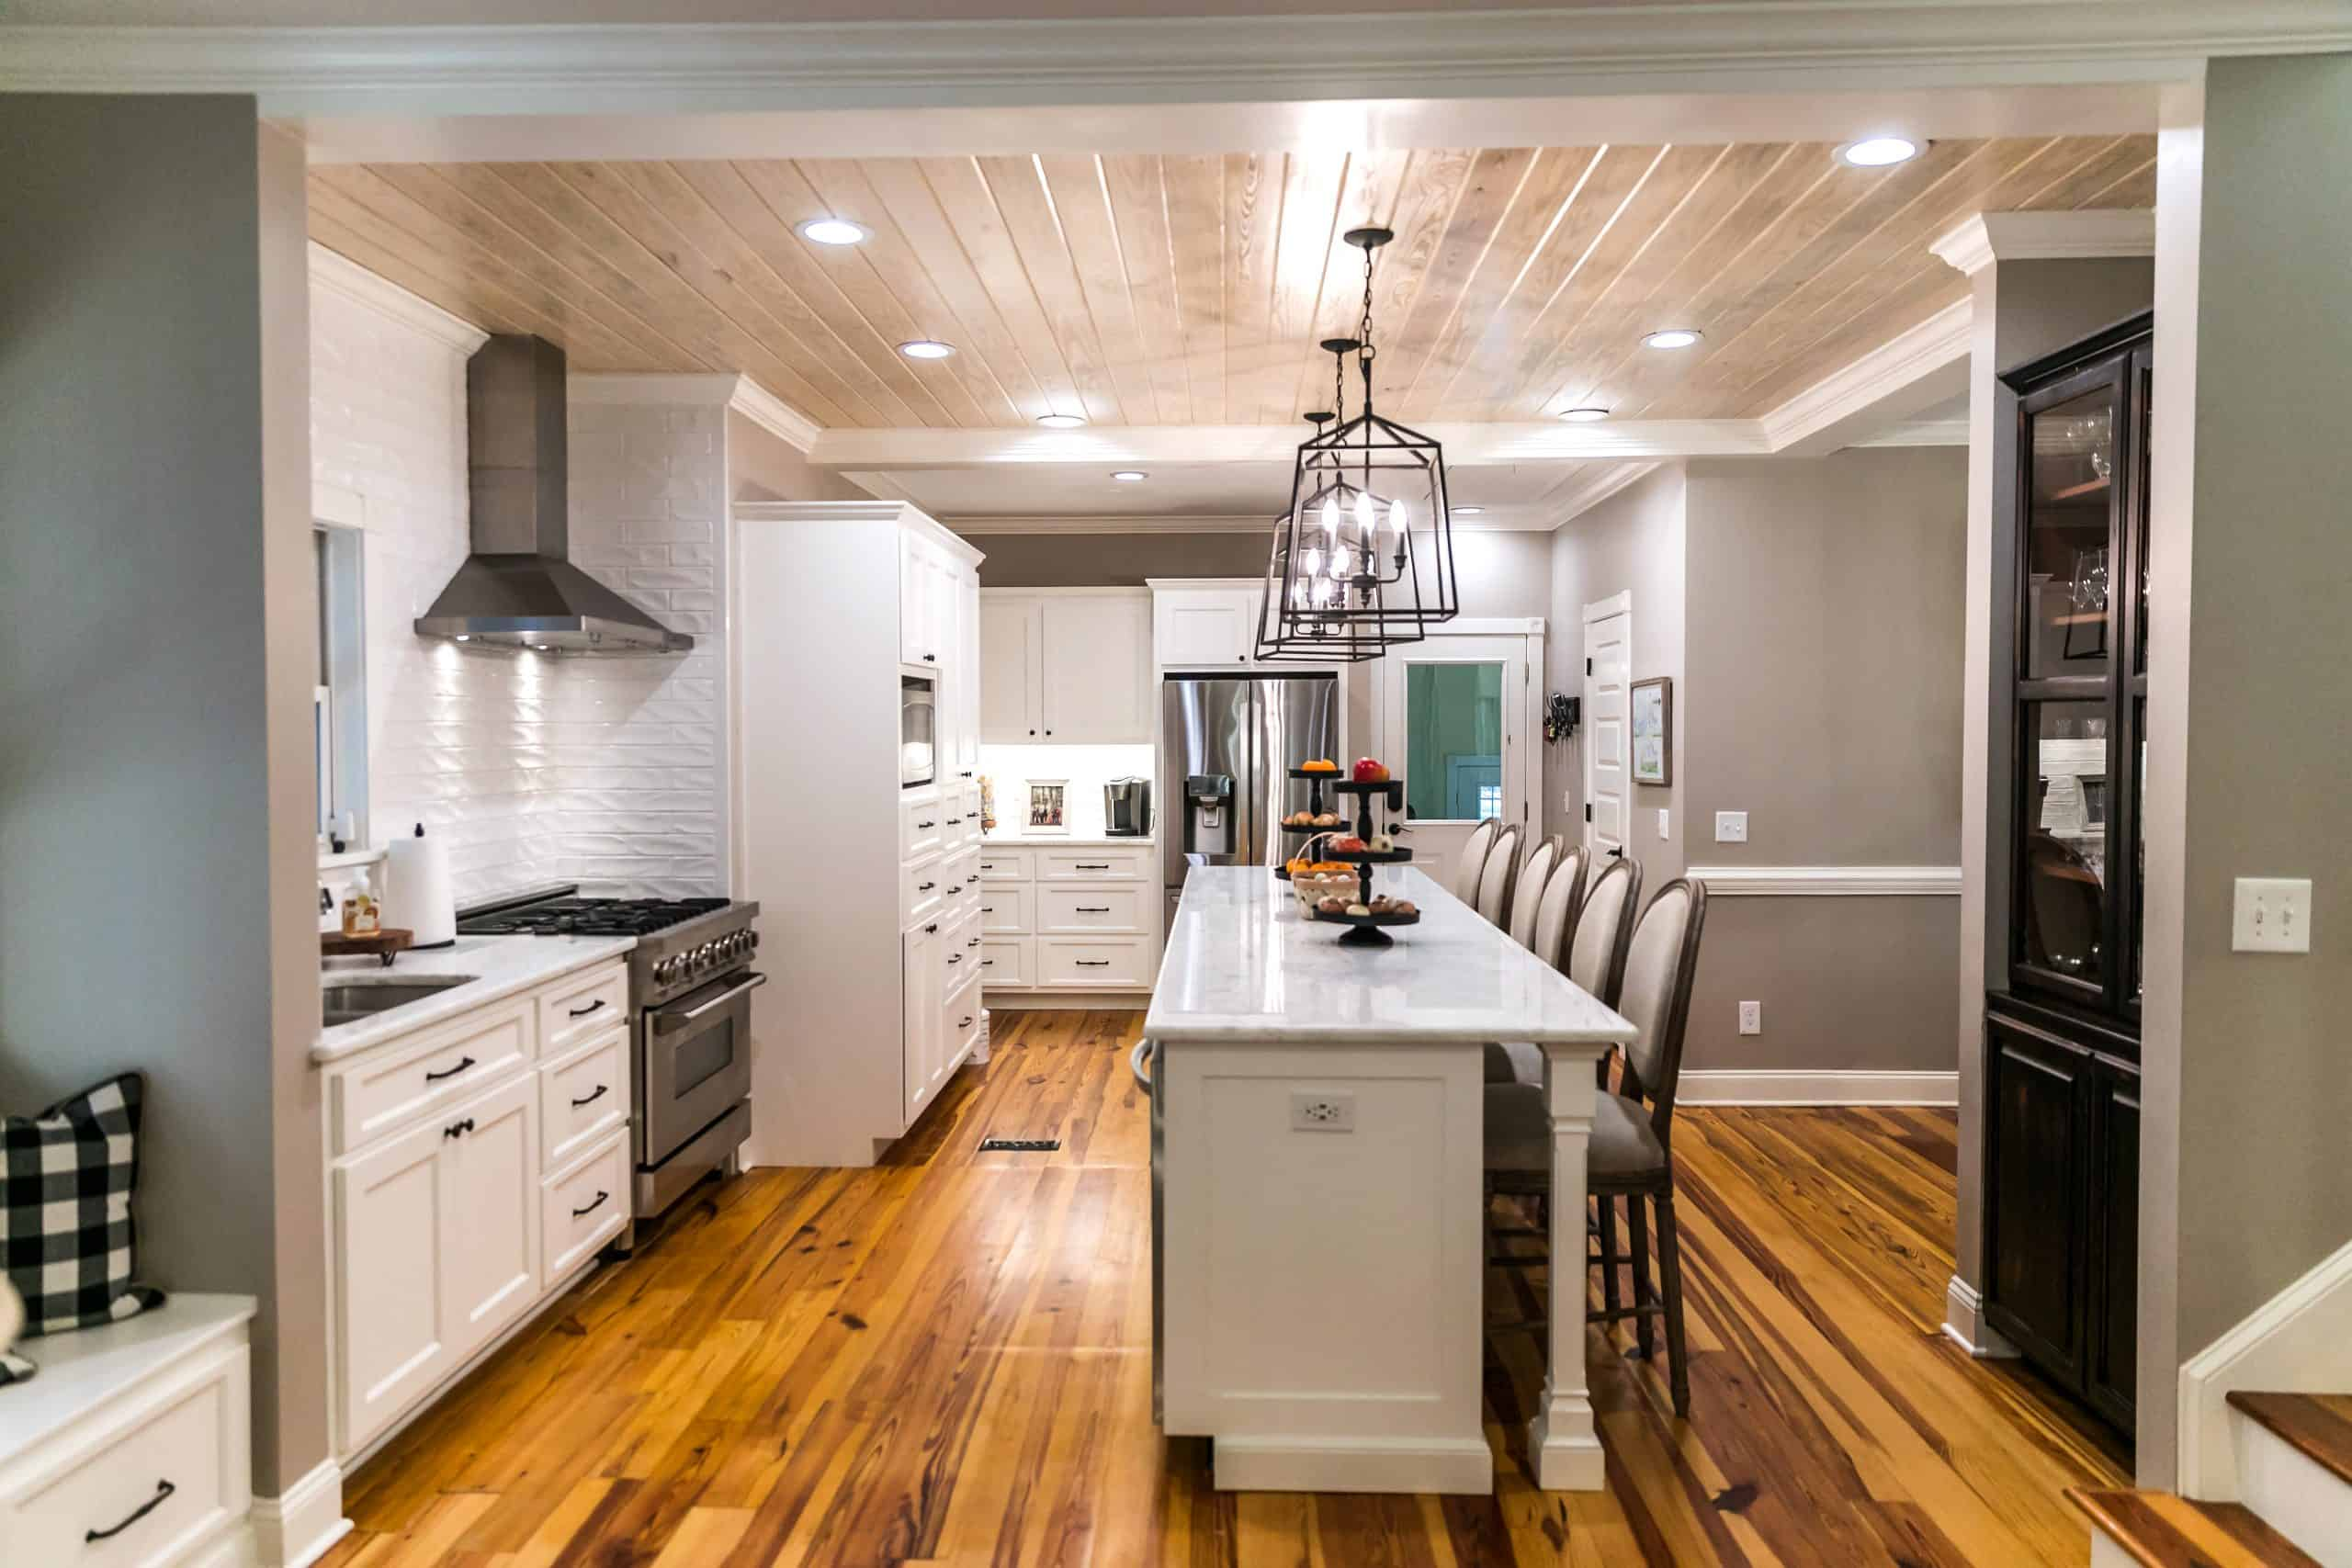 Remodel kitchen for less - Large renovated white kitchen with updated cabinets, textured subway tile, black iron lights and pine hardwood flooring